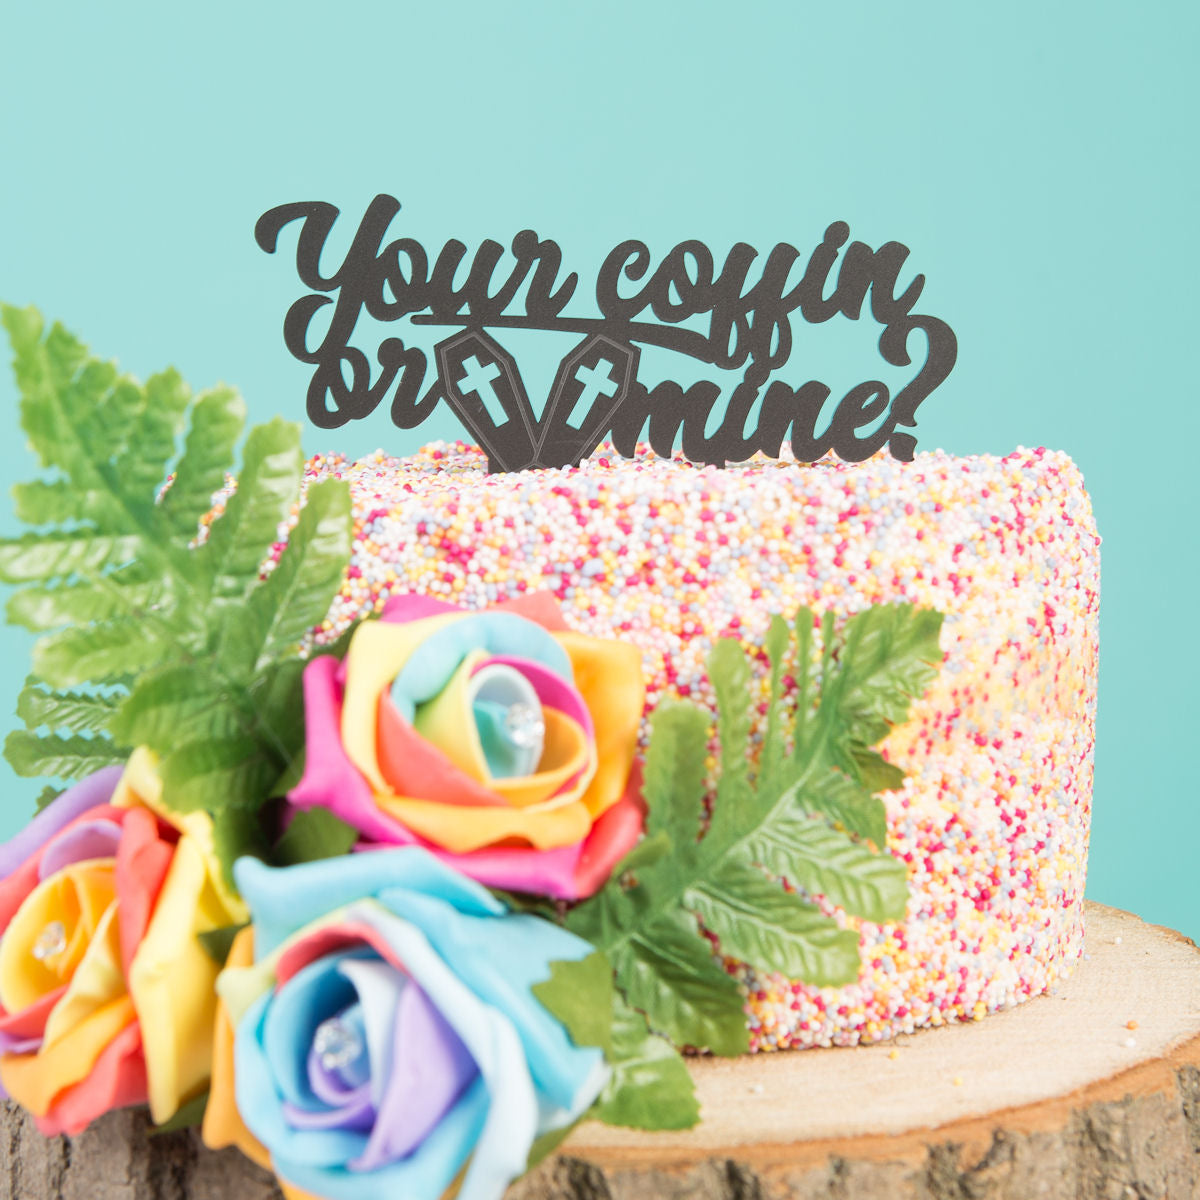 Sugar & Vice Your Coffin Or Mine Cake Topper